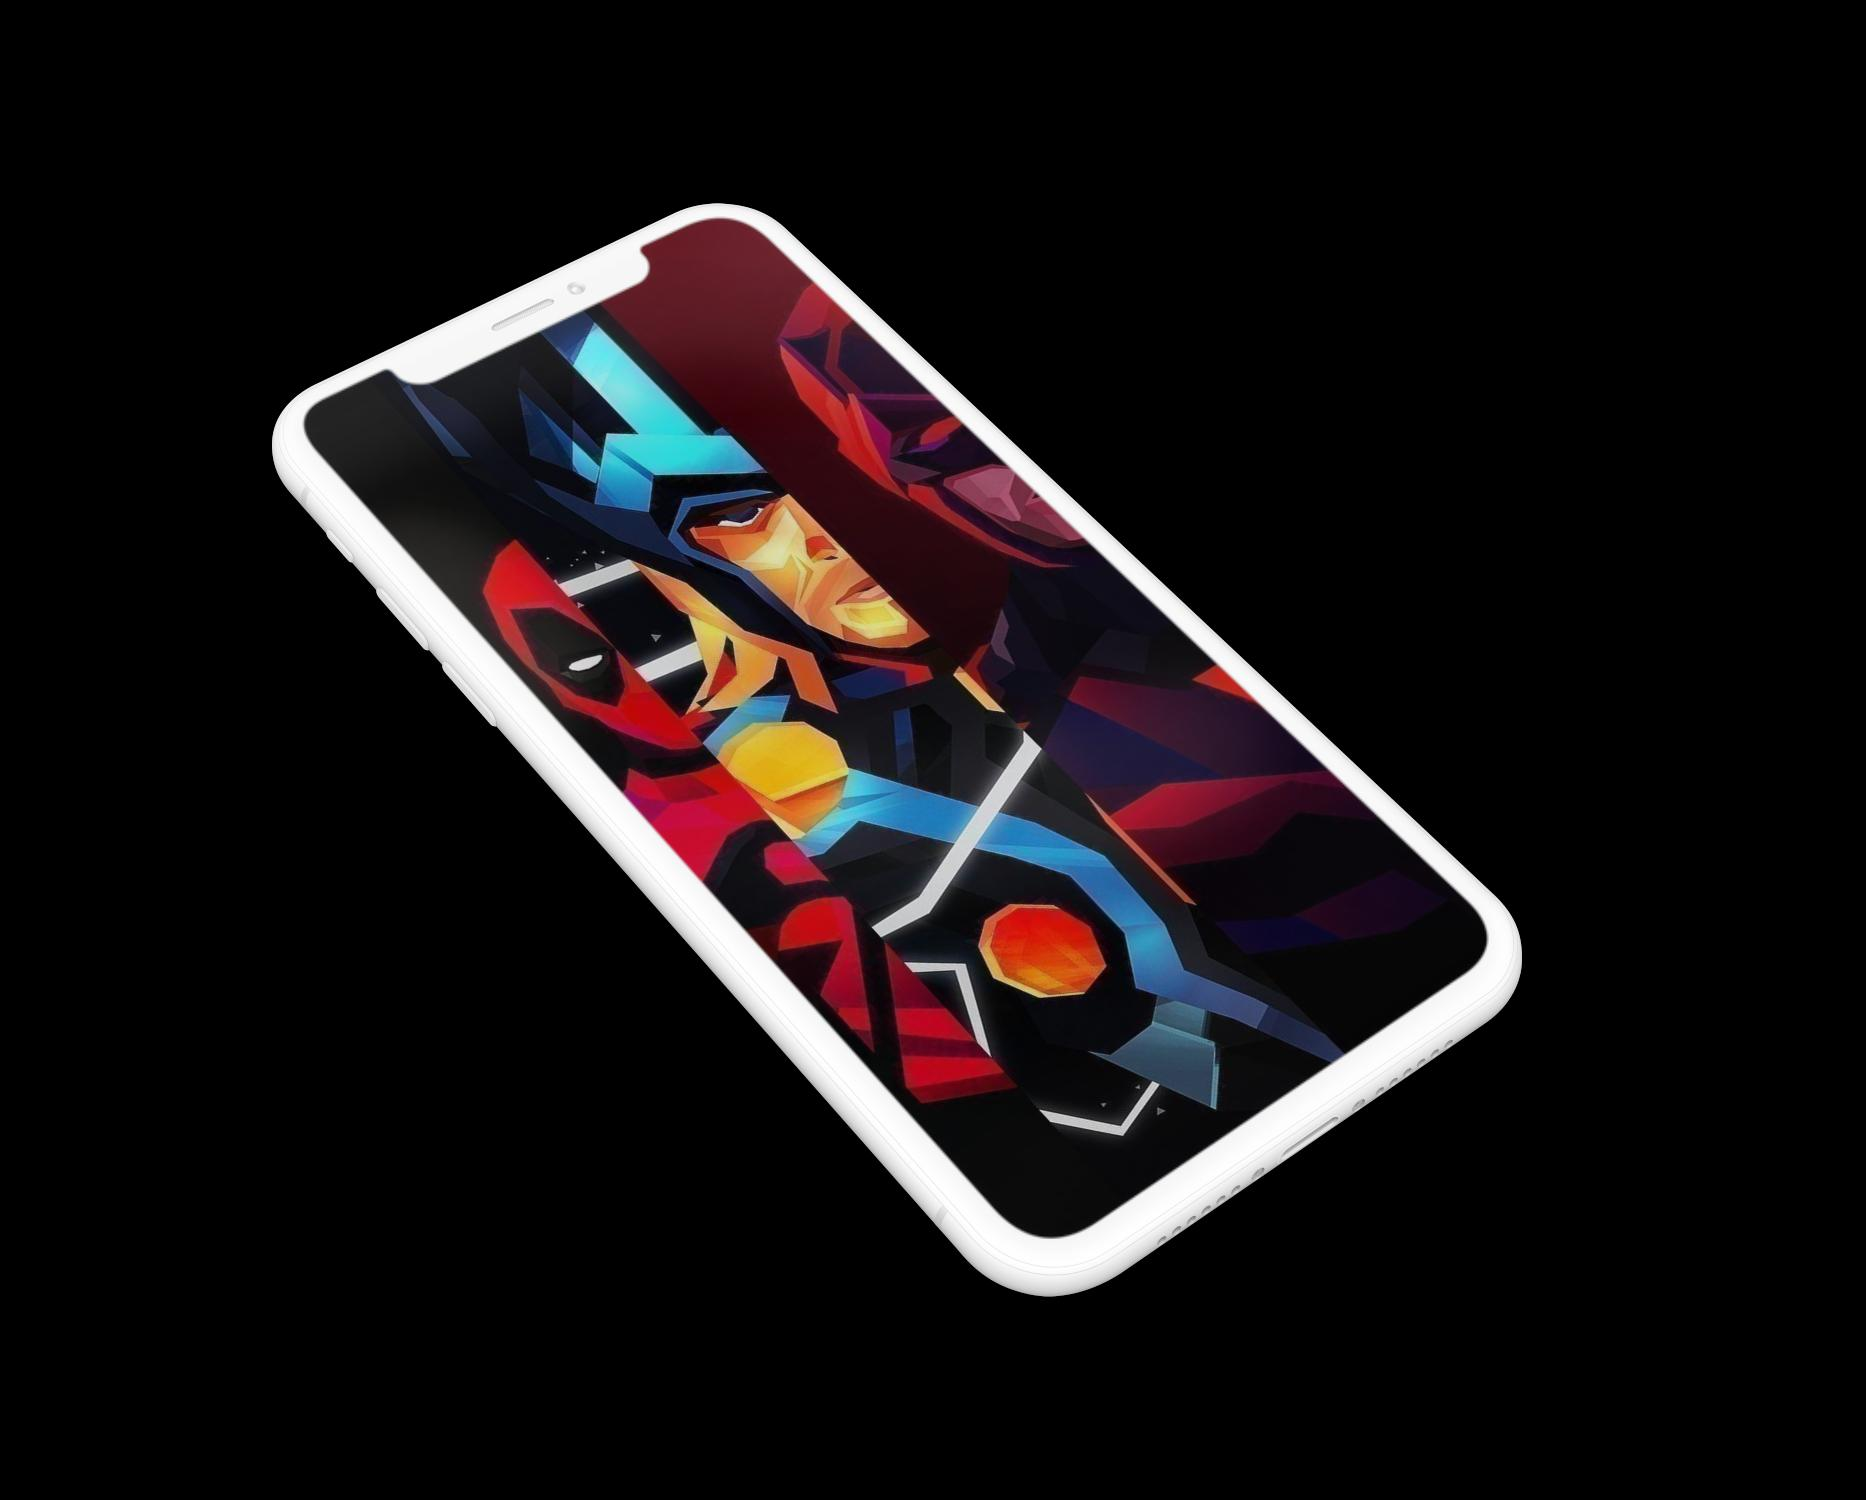 Superheroes Wallpapers Hd 4k For Whatsapp For Android Apk Download